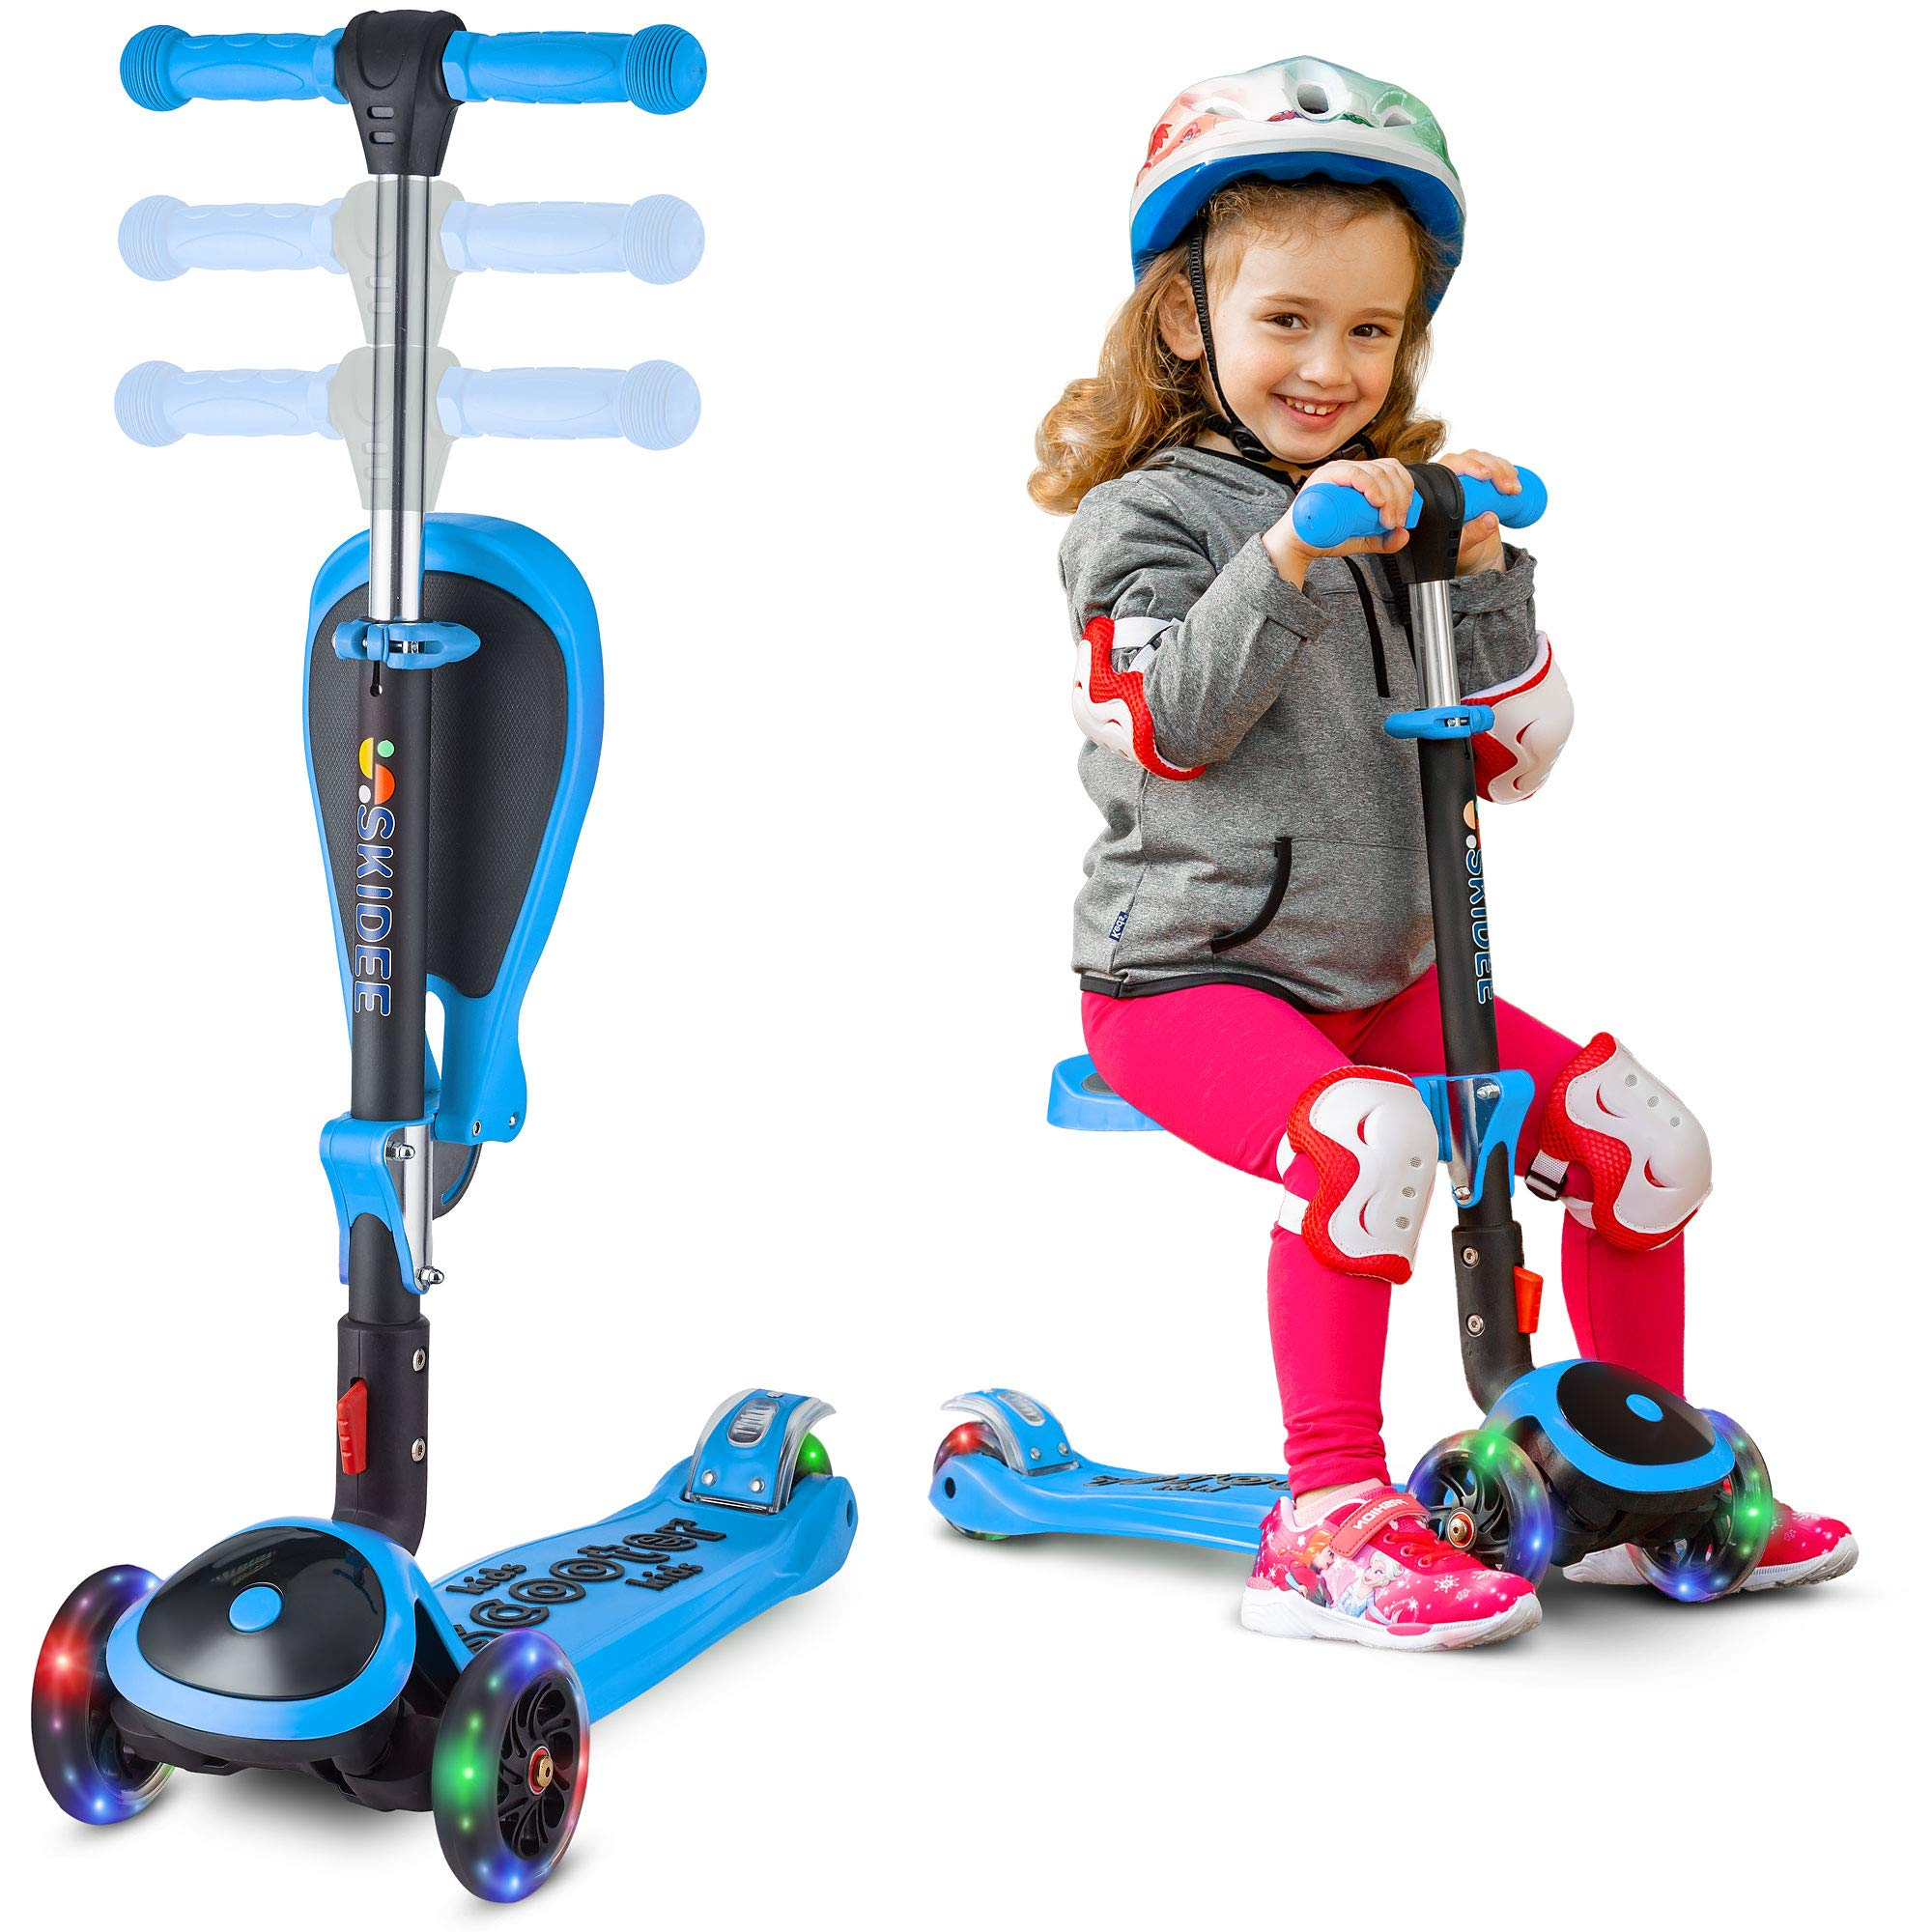 SKIDEE Scooter for Kids with Folding Seat - 2-in-1 Adjustable 3 Wheel Kick Scooter for Toddlers Girls & Boys - Fun Outdoor Toys for Kids Fitness, Outside Games, Kid Activities - Y200 by S SKIDEE